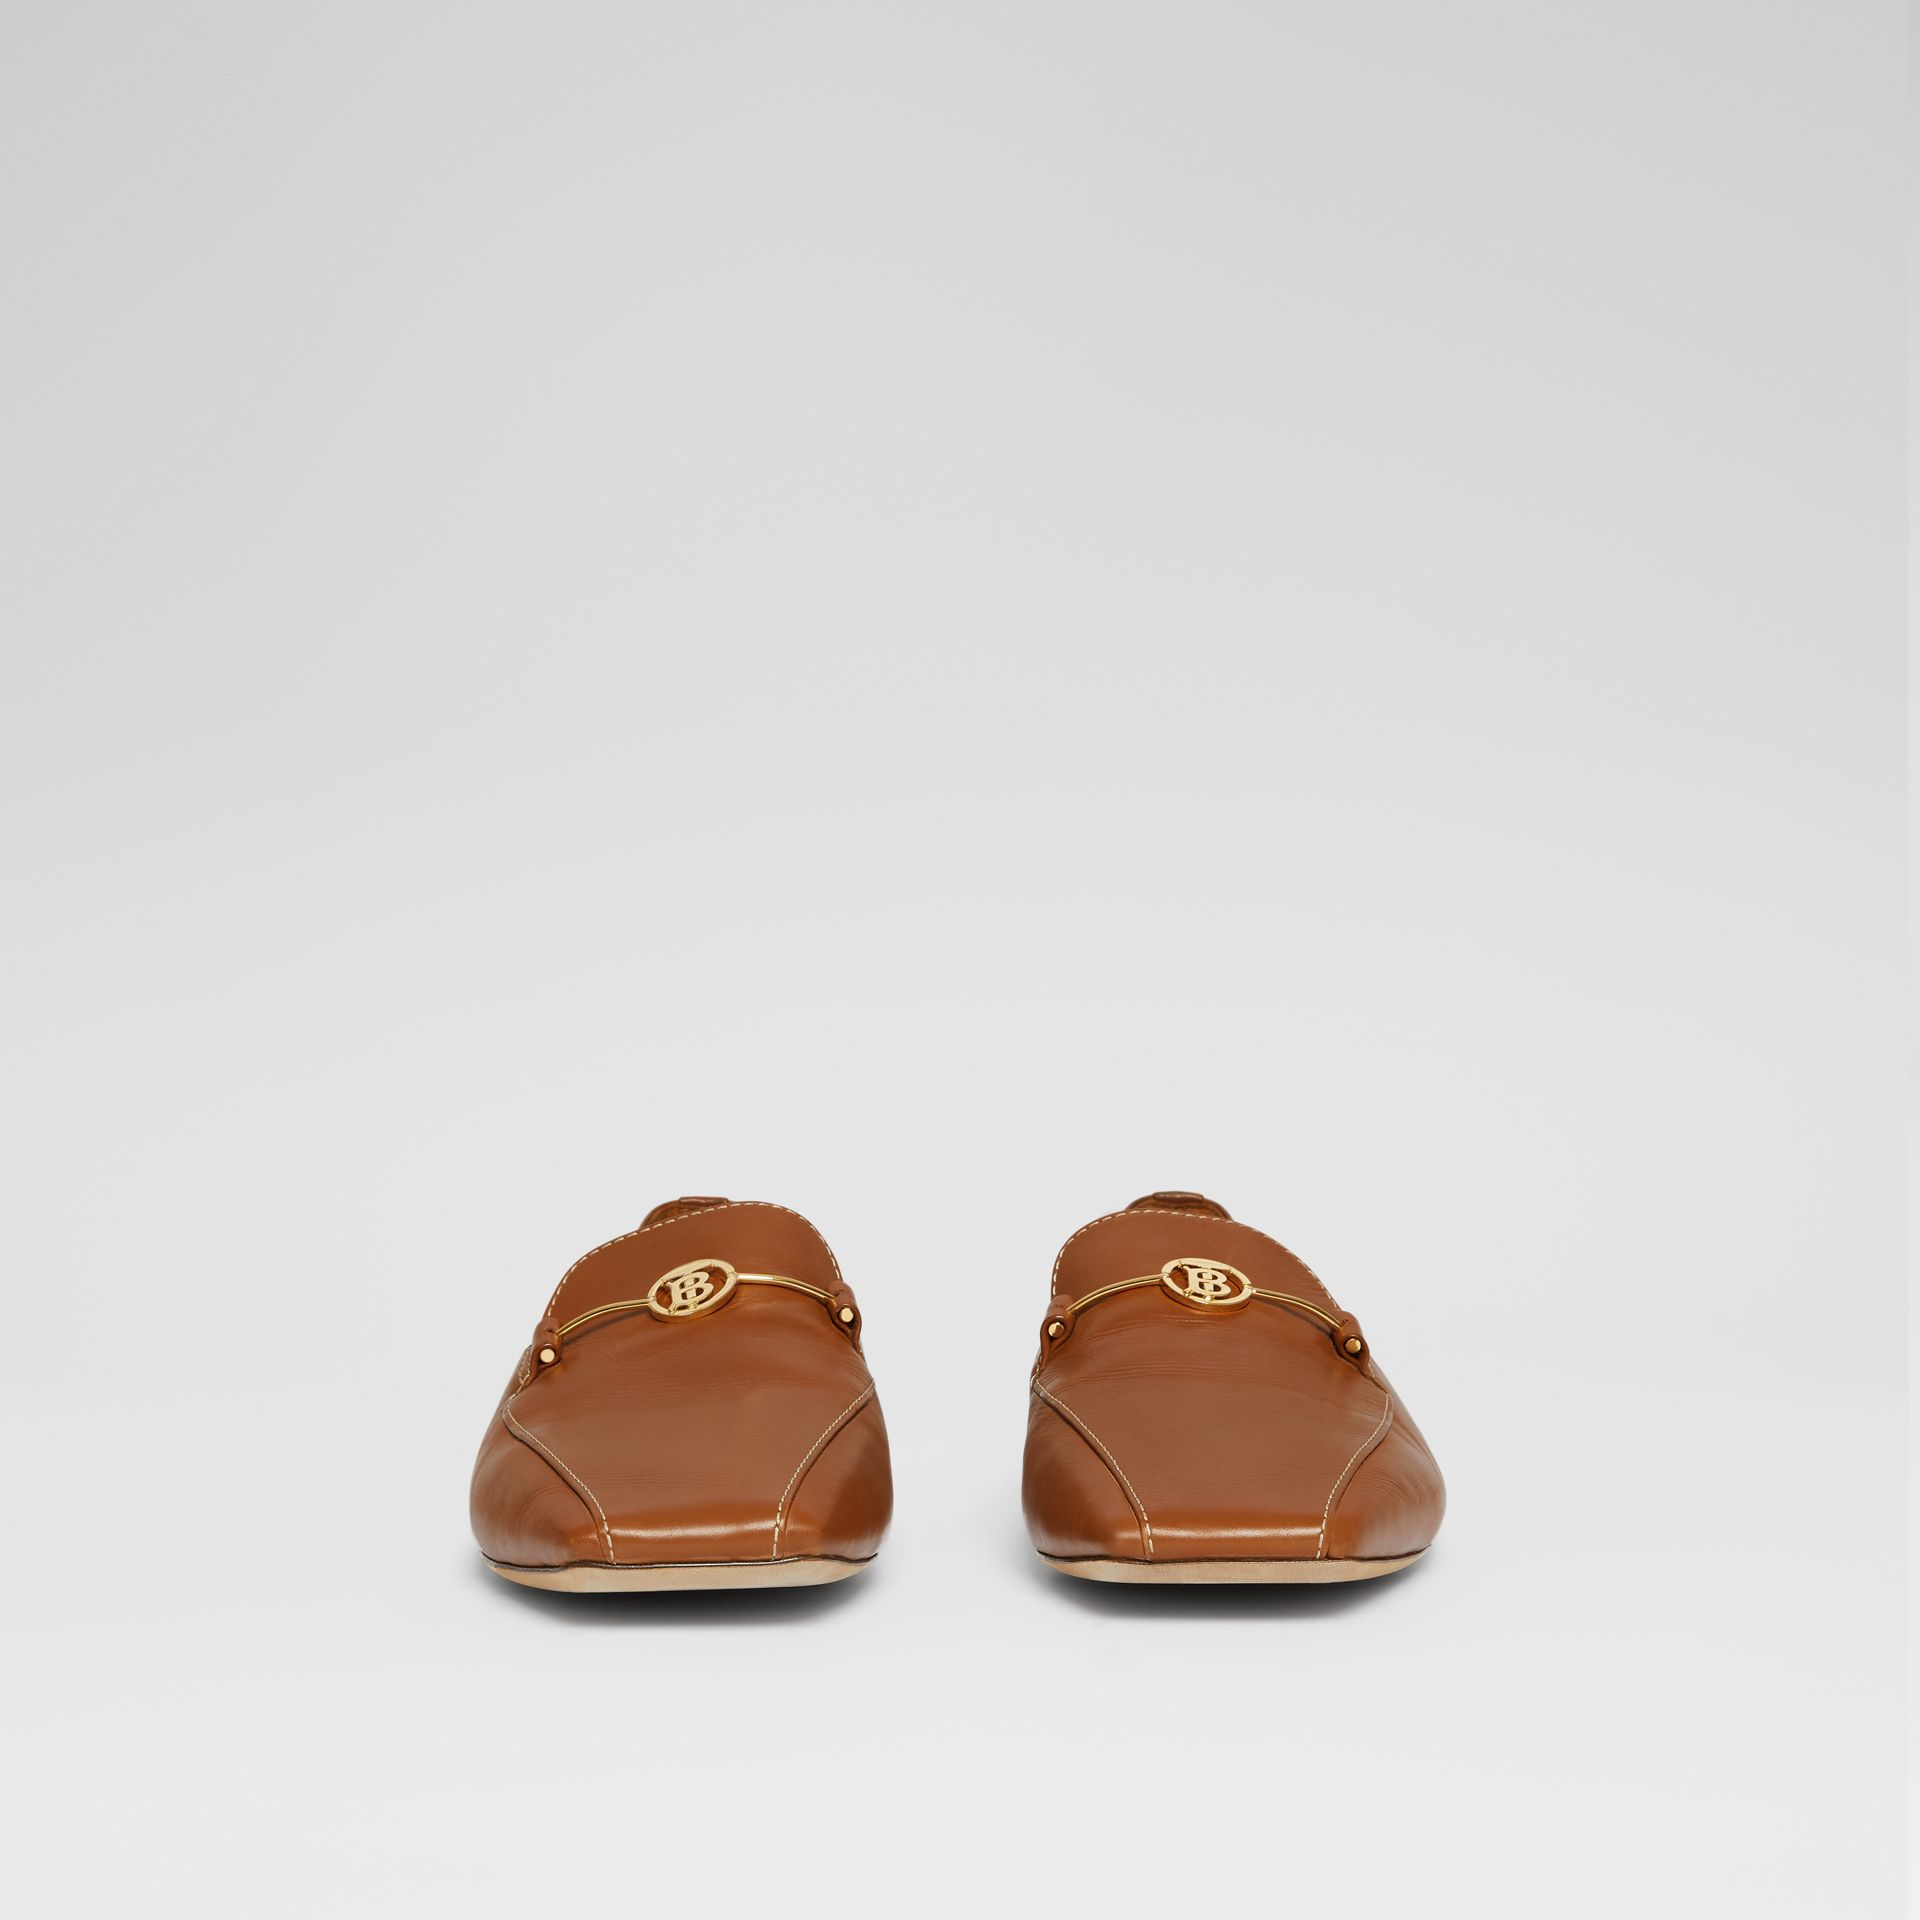 Monogram Motif Leather Loafers in Tan - Women | Burberry United Kingdom - gallery image 3